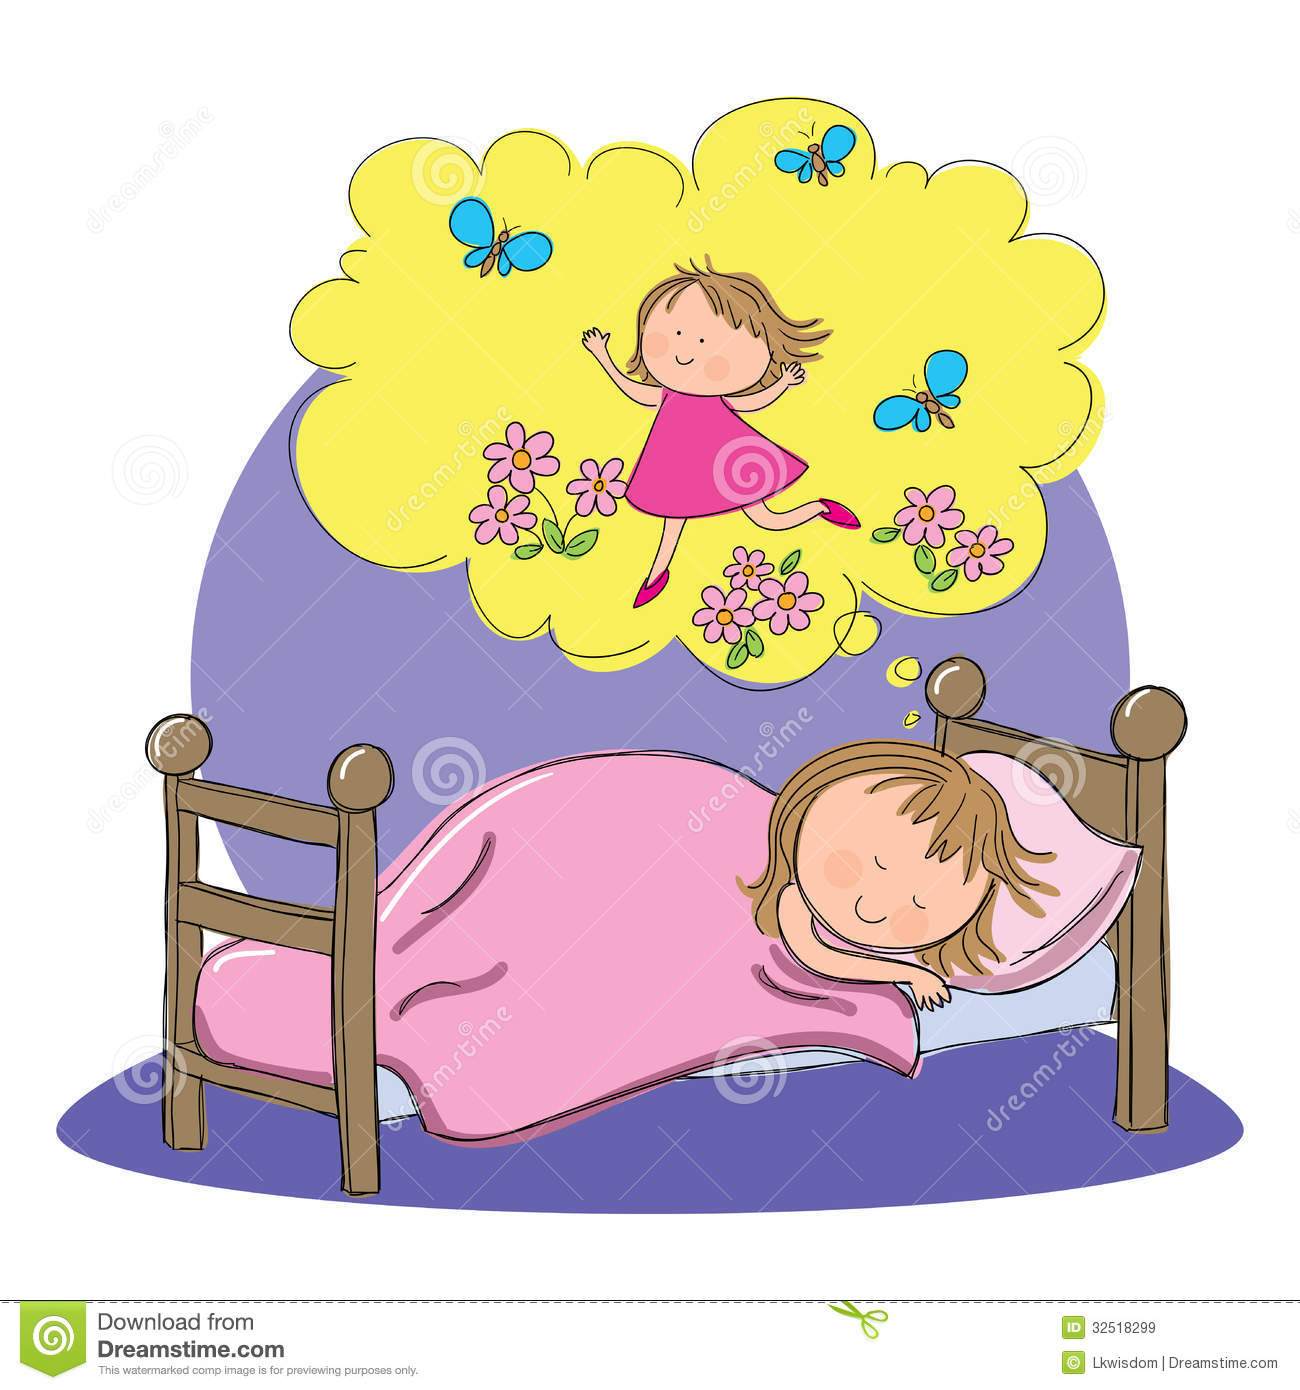 Hand drawn picture of child dreaming happy thoughts, illustrated in a ...